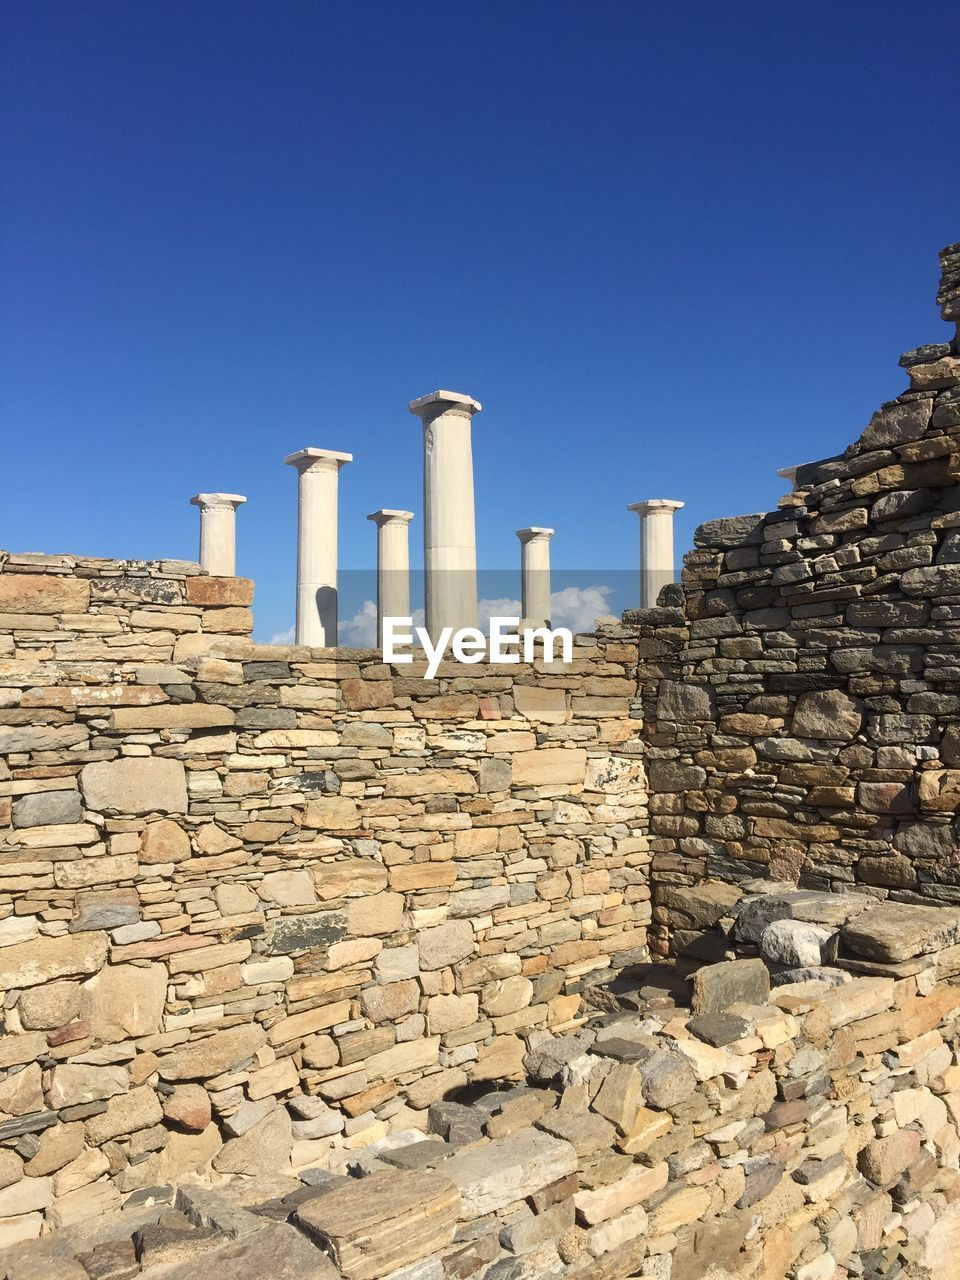 sky, clear sky, architecture, the past, built structure, history, day, ancient civilization, no people, nature, ancient, blue, copy space, sunlight, architectural column, travel destinations, tourism, building exterior, solid, travel, outdoors, stone wall, archaeology, ruined